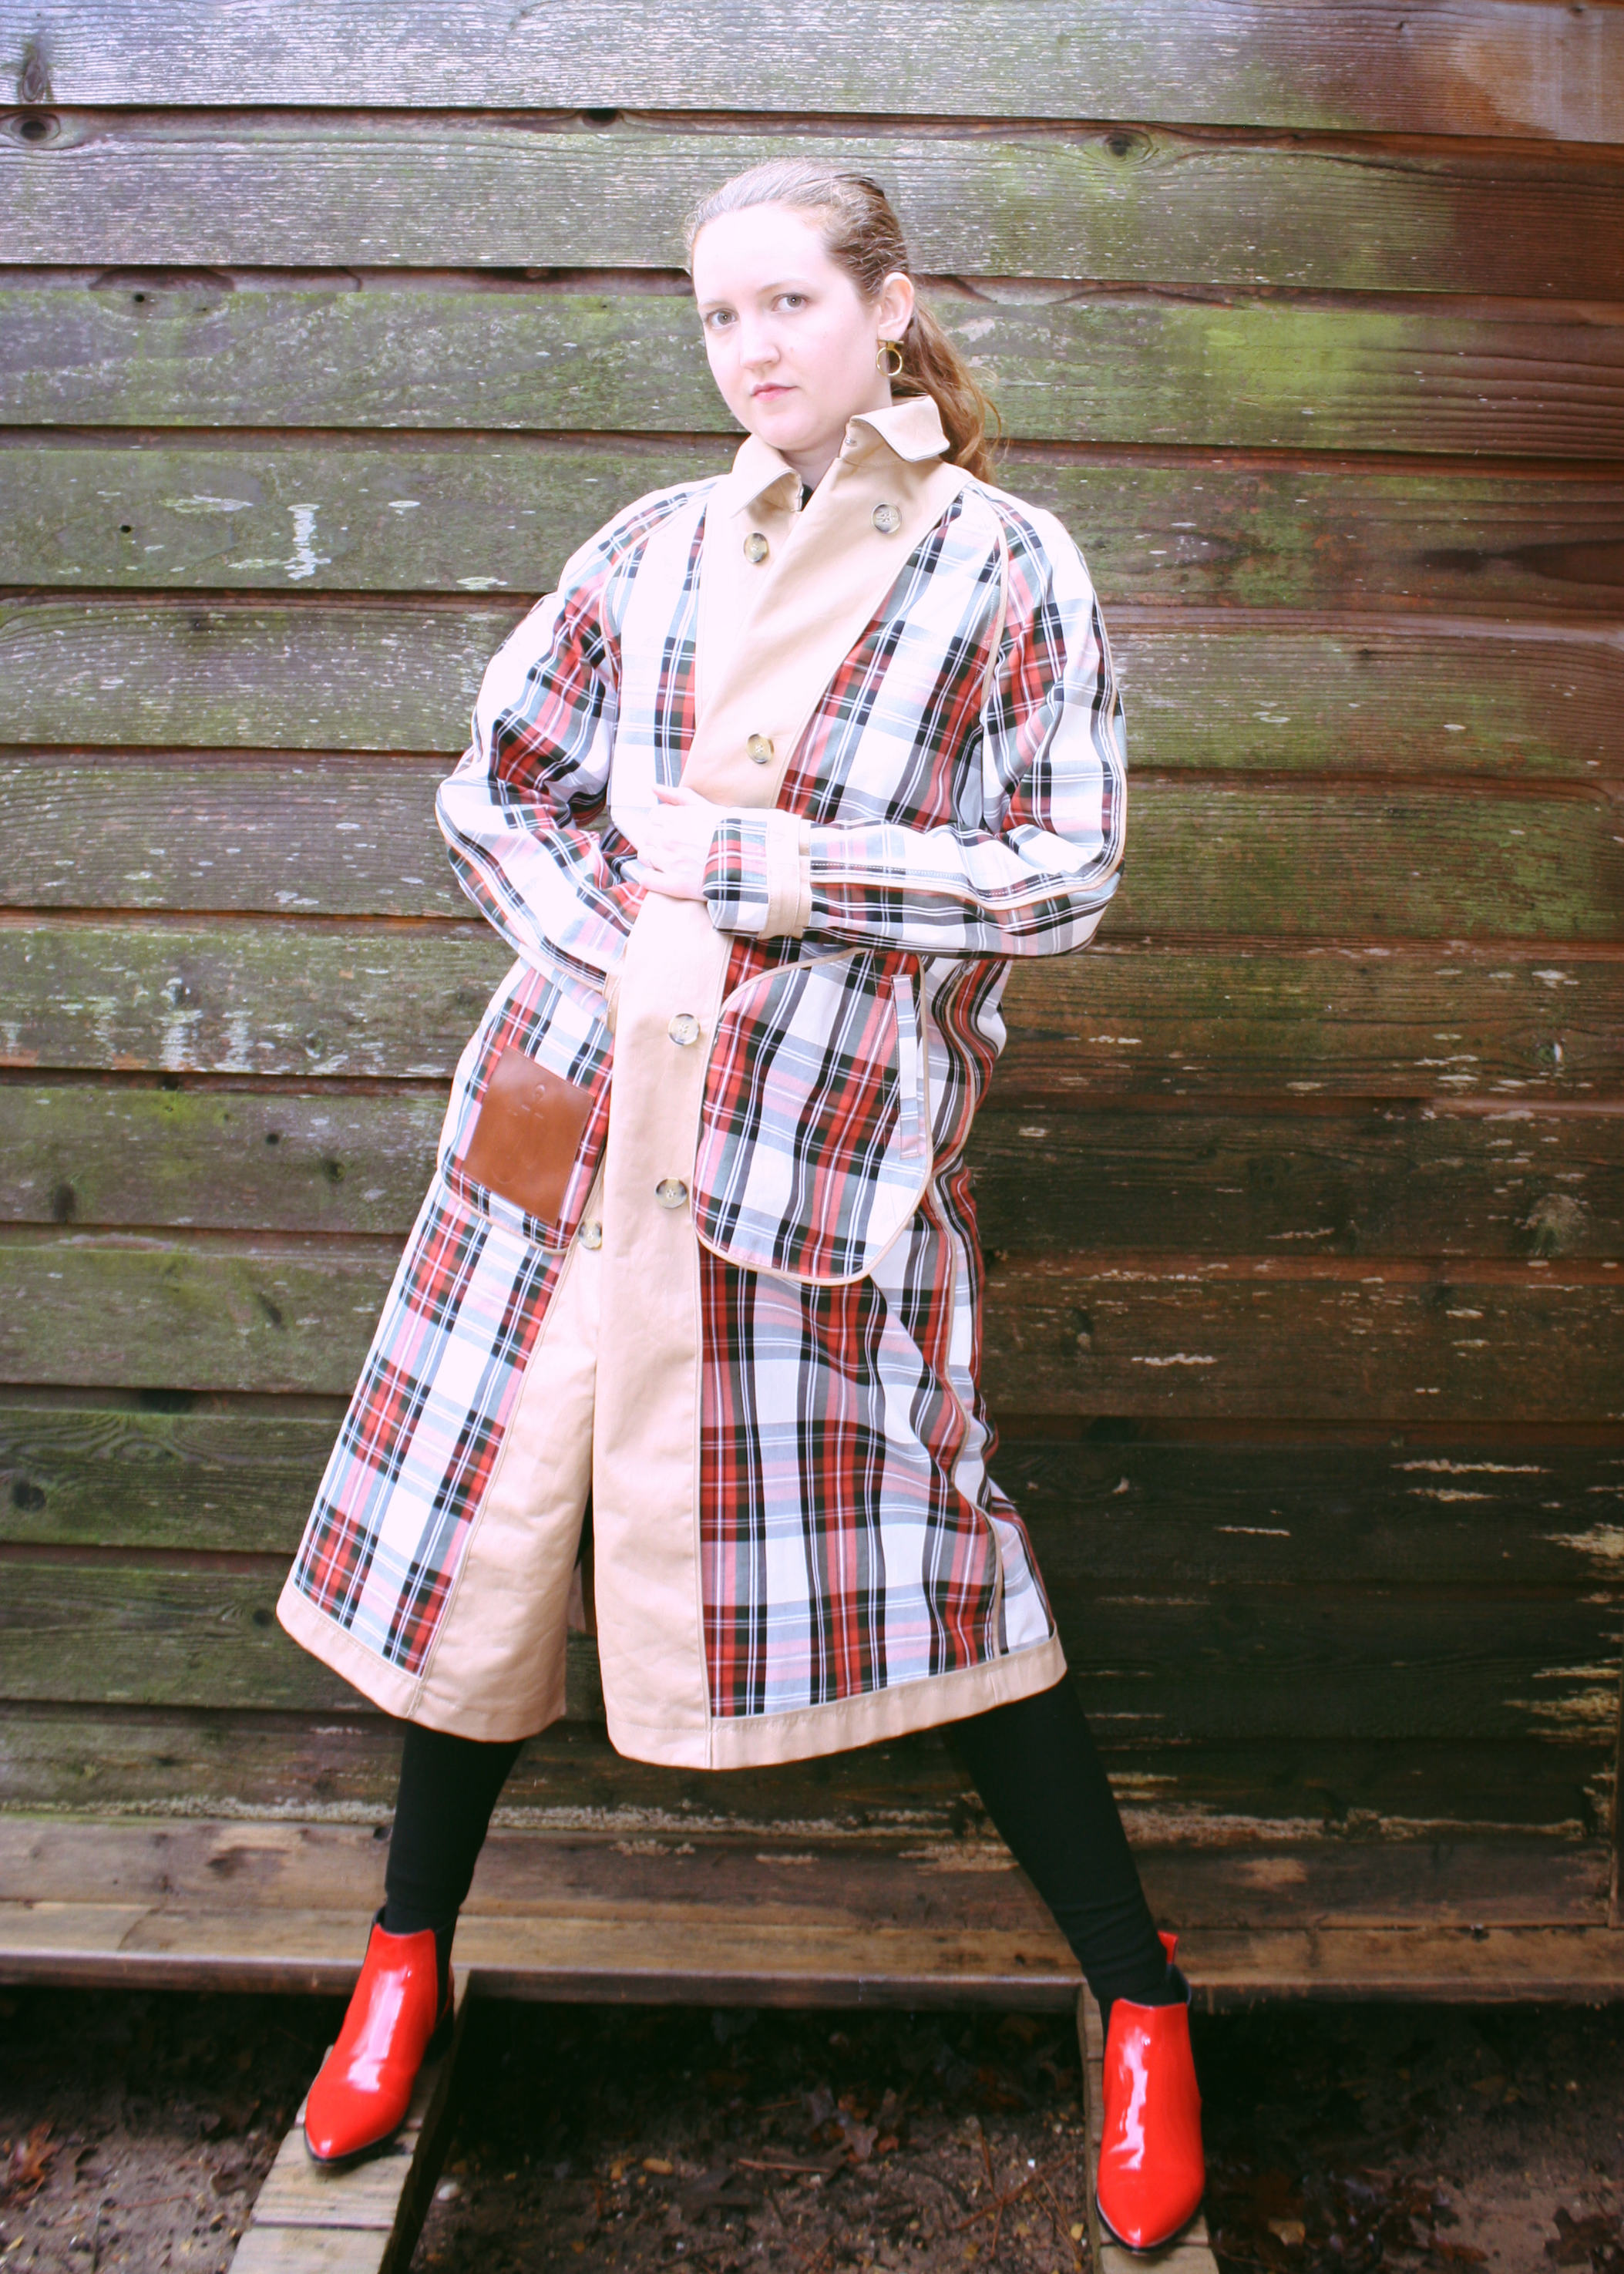 LOFT Gray Shirtdress + Dolce Vita Red Boots + J.W. Anderson & Uniqlo Trench